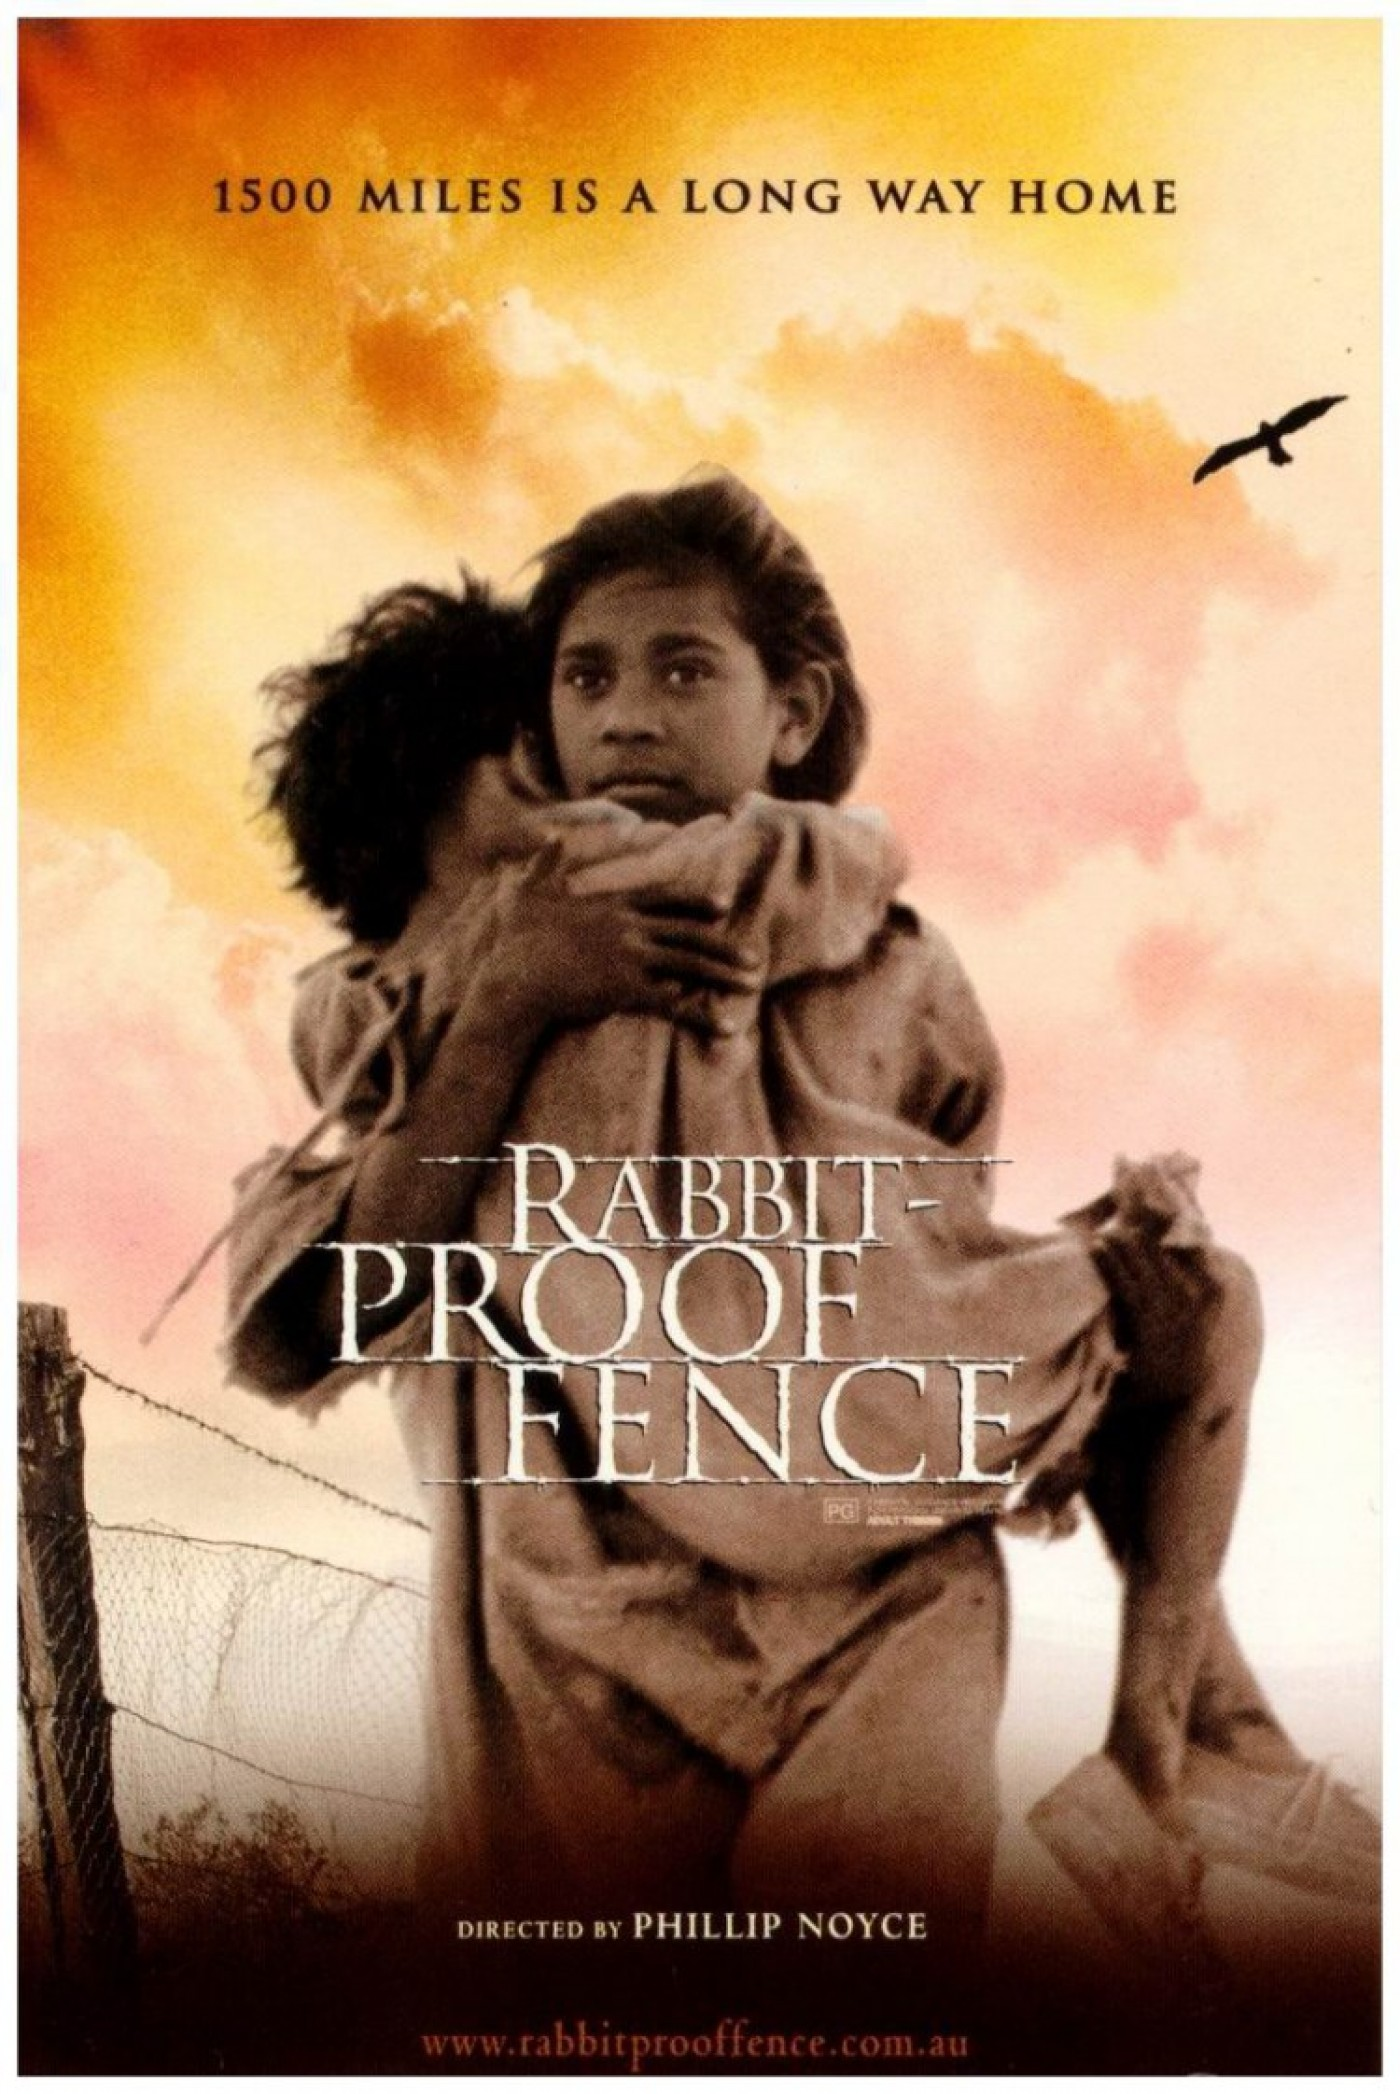 003 Rabbit Proof Fence Film Review Essay 1295772578 48 Top 1400